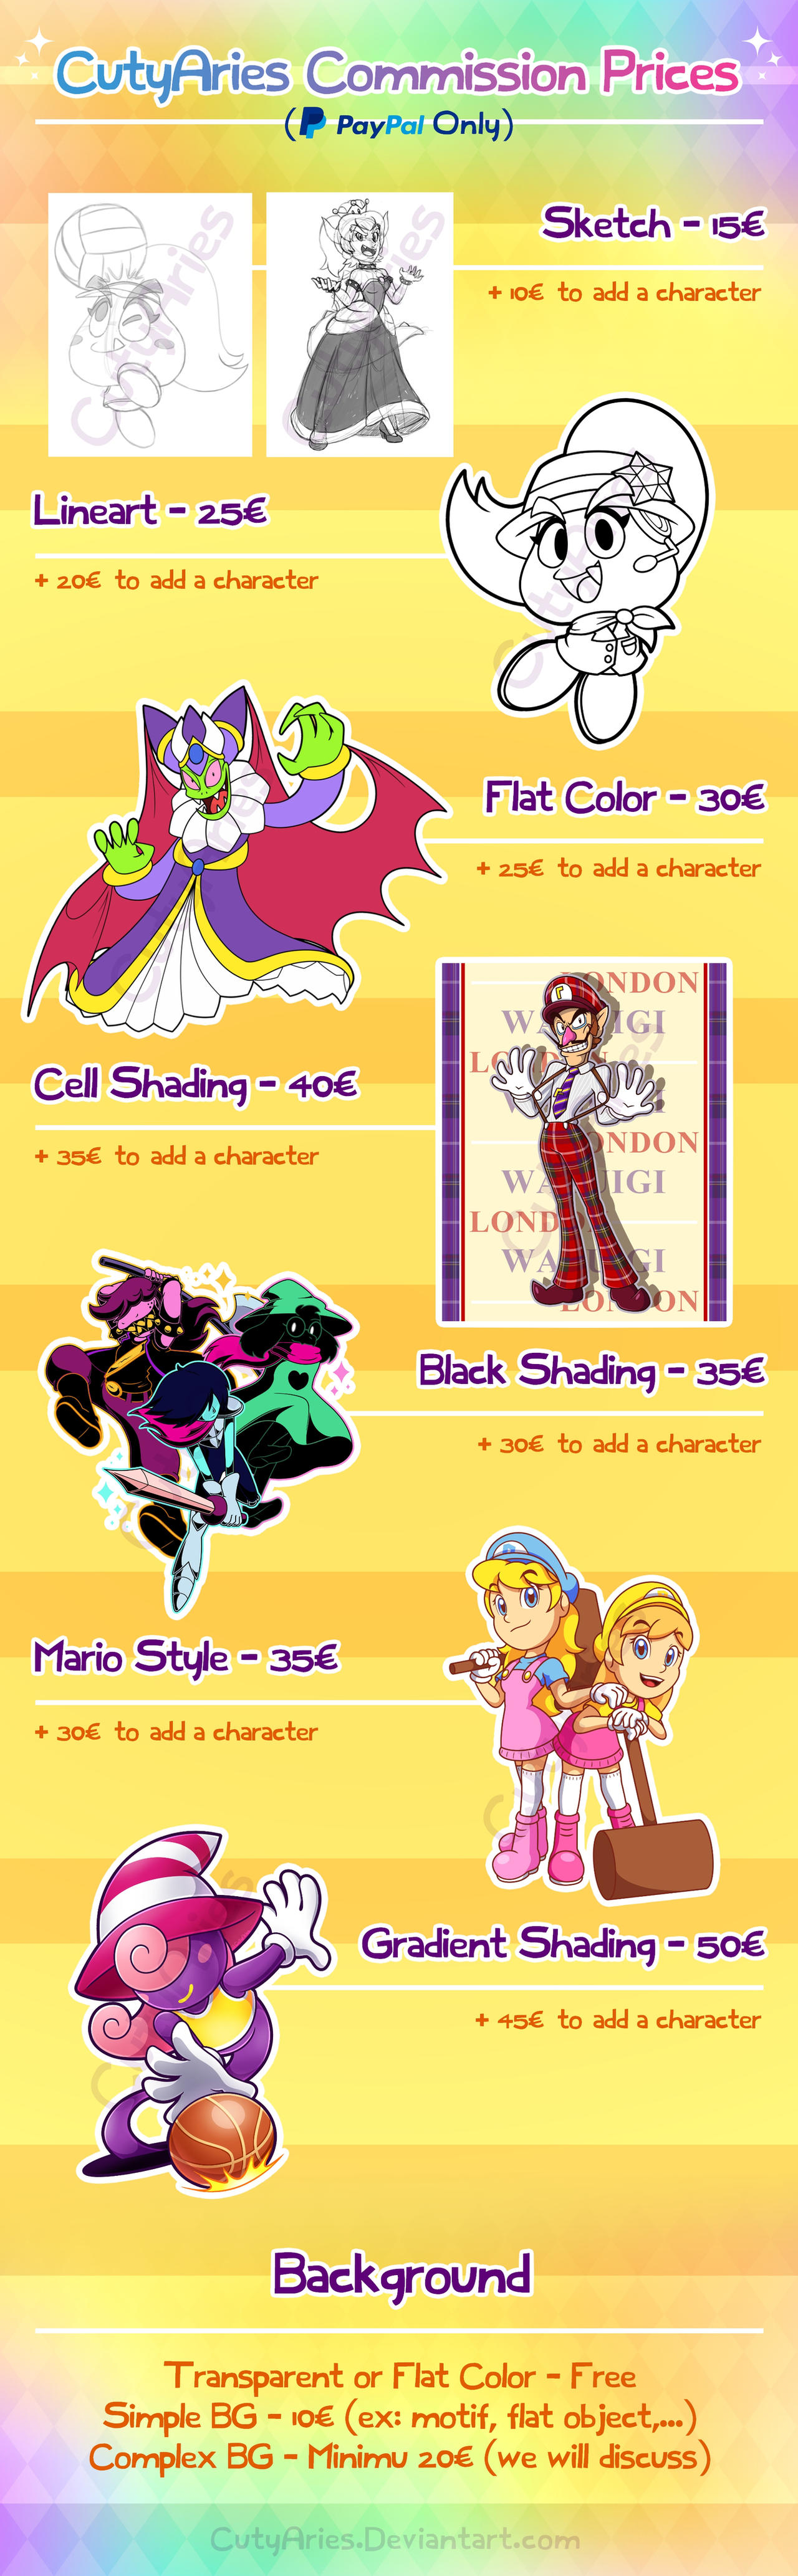 CutyAries Commission Prices